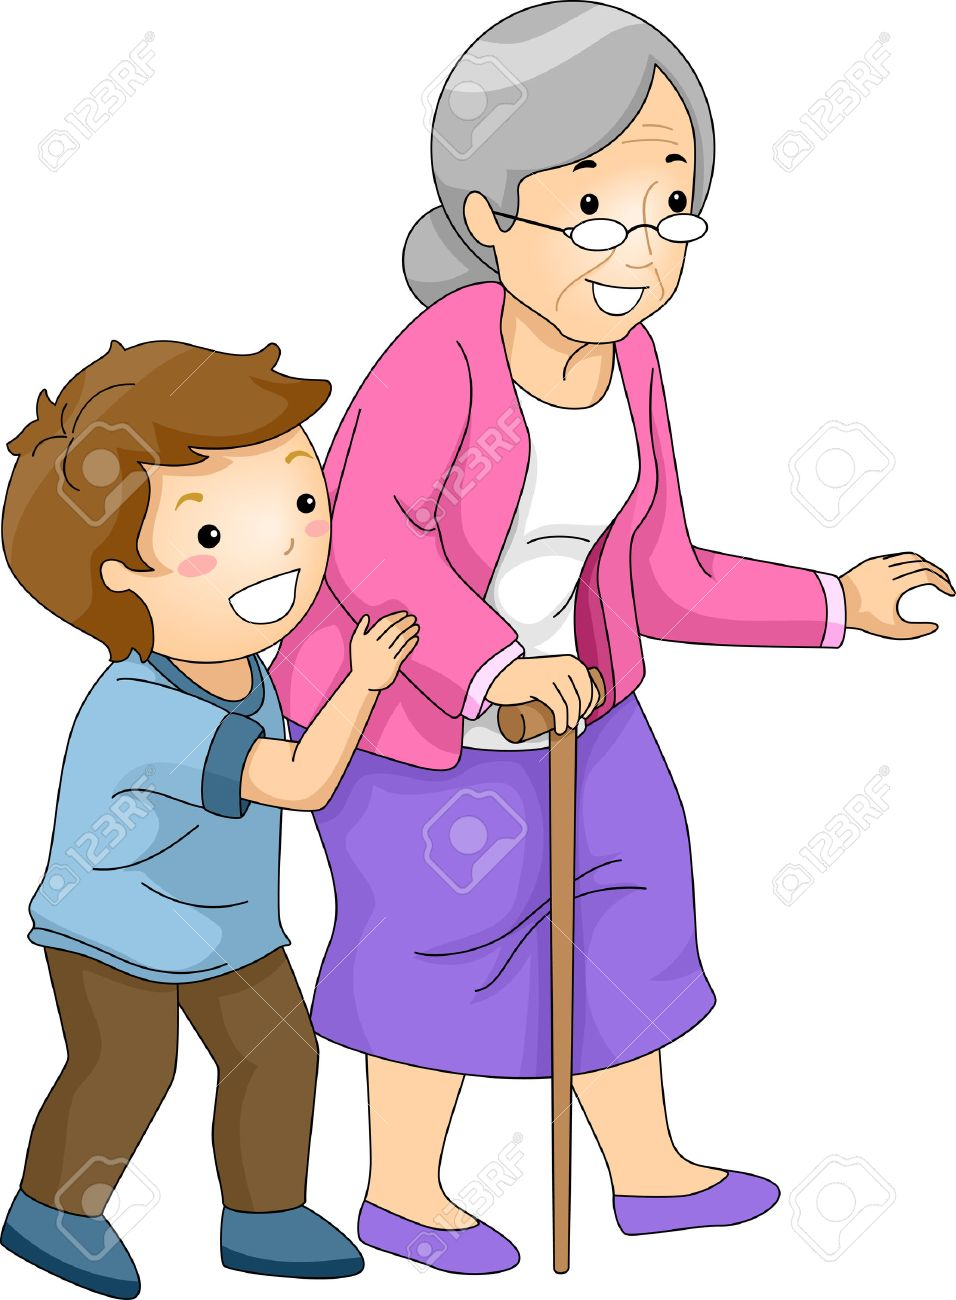 956x1300 Illustration Of A Little Boy Helping An Old Woman Cross The Street